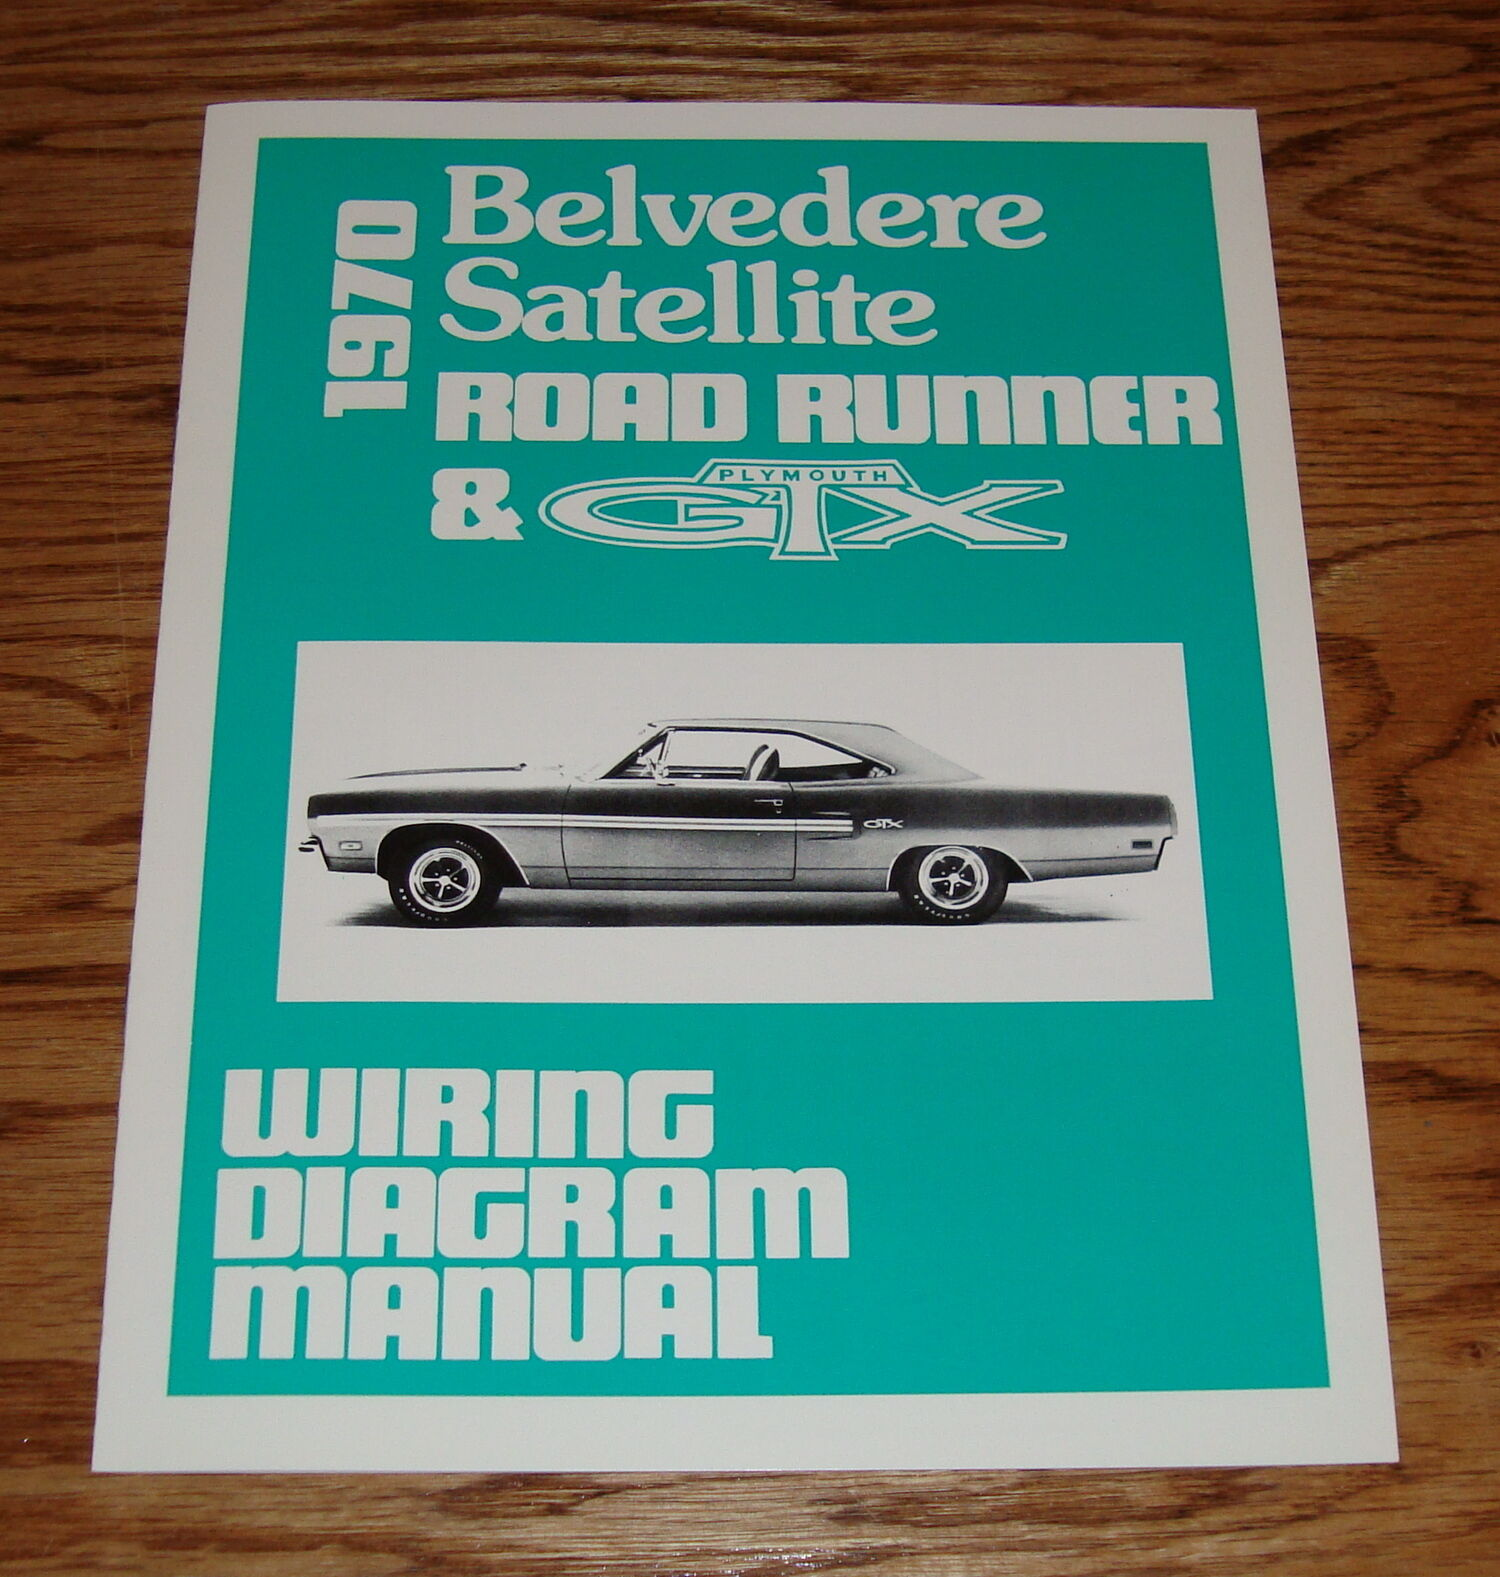 1970 Plymouth Gtx Wiring Diagram Detailed Schematics Belvedere Satellite Road Runner